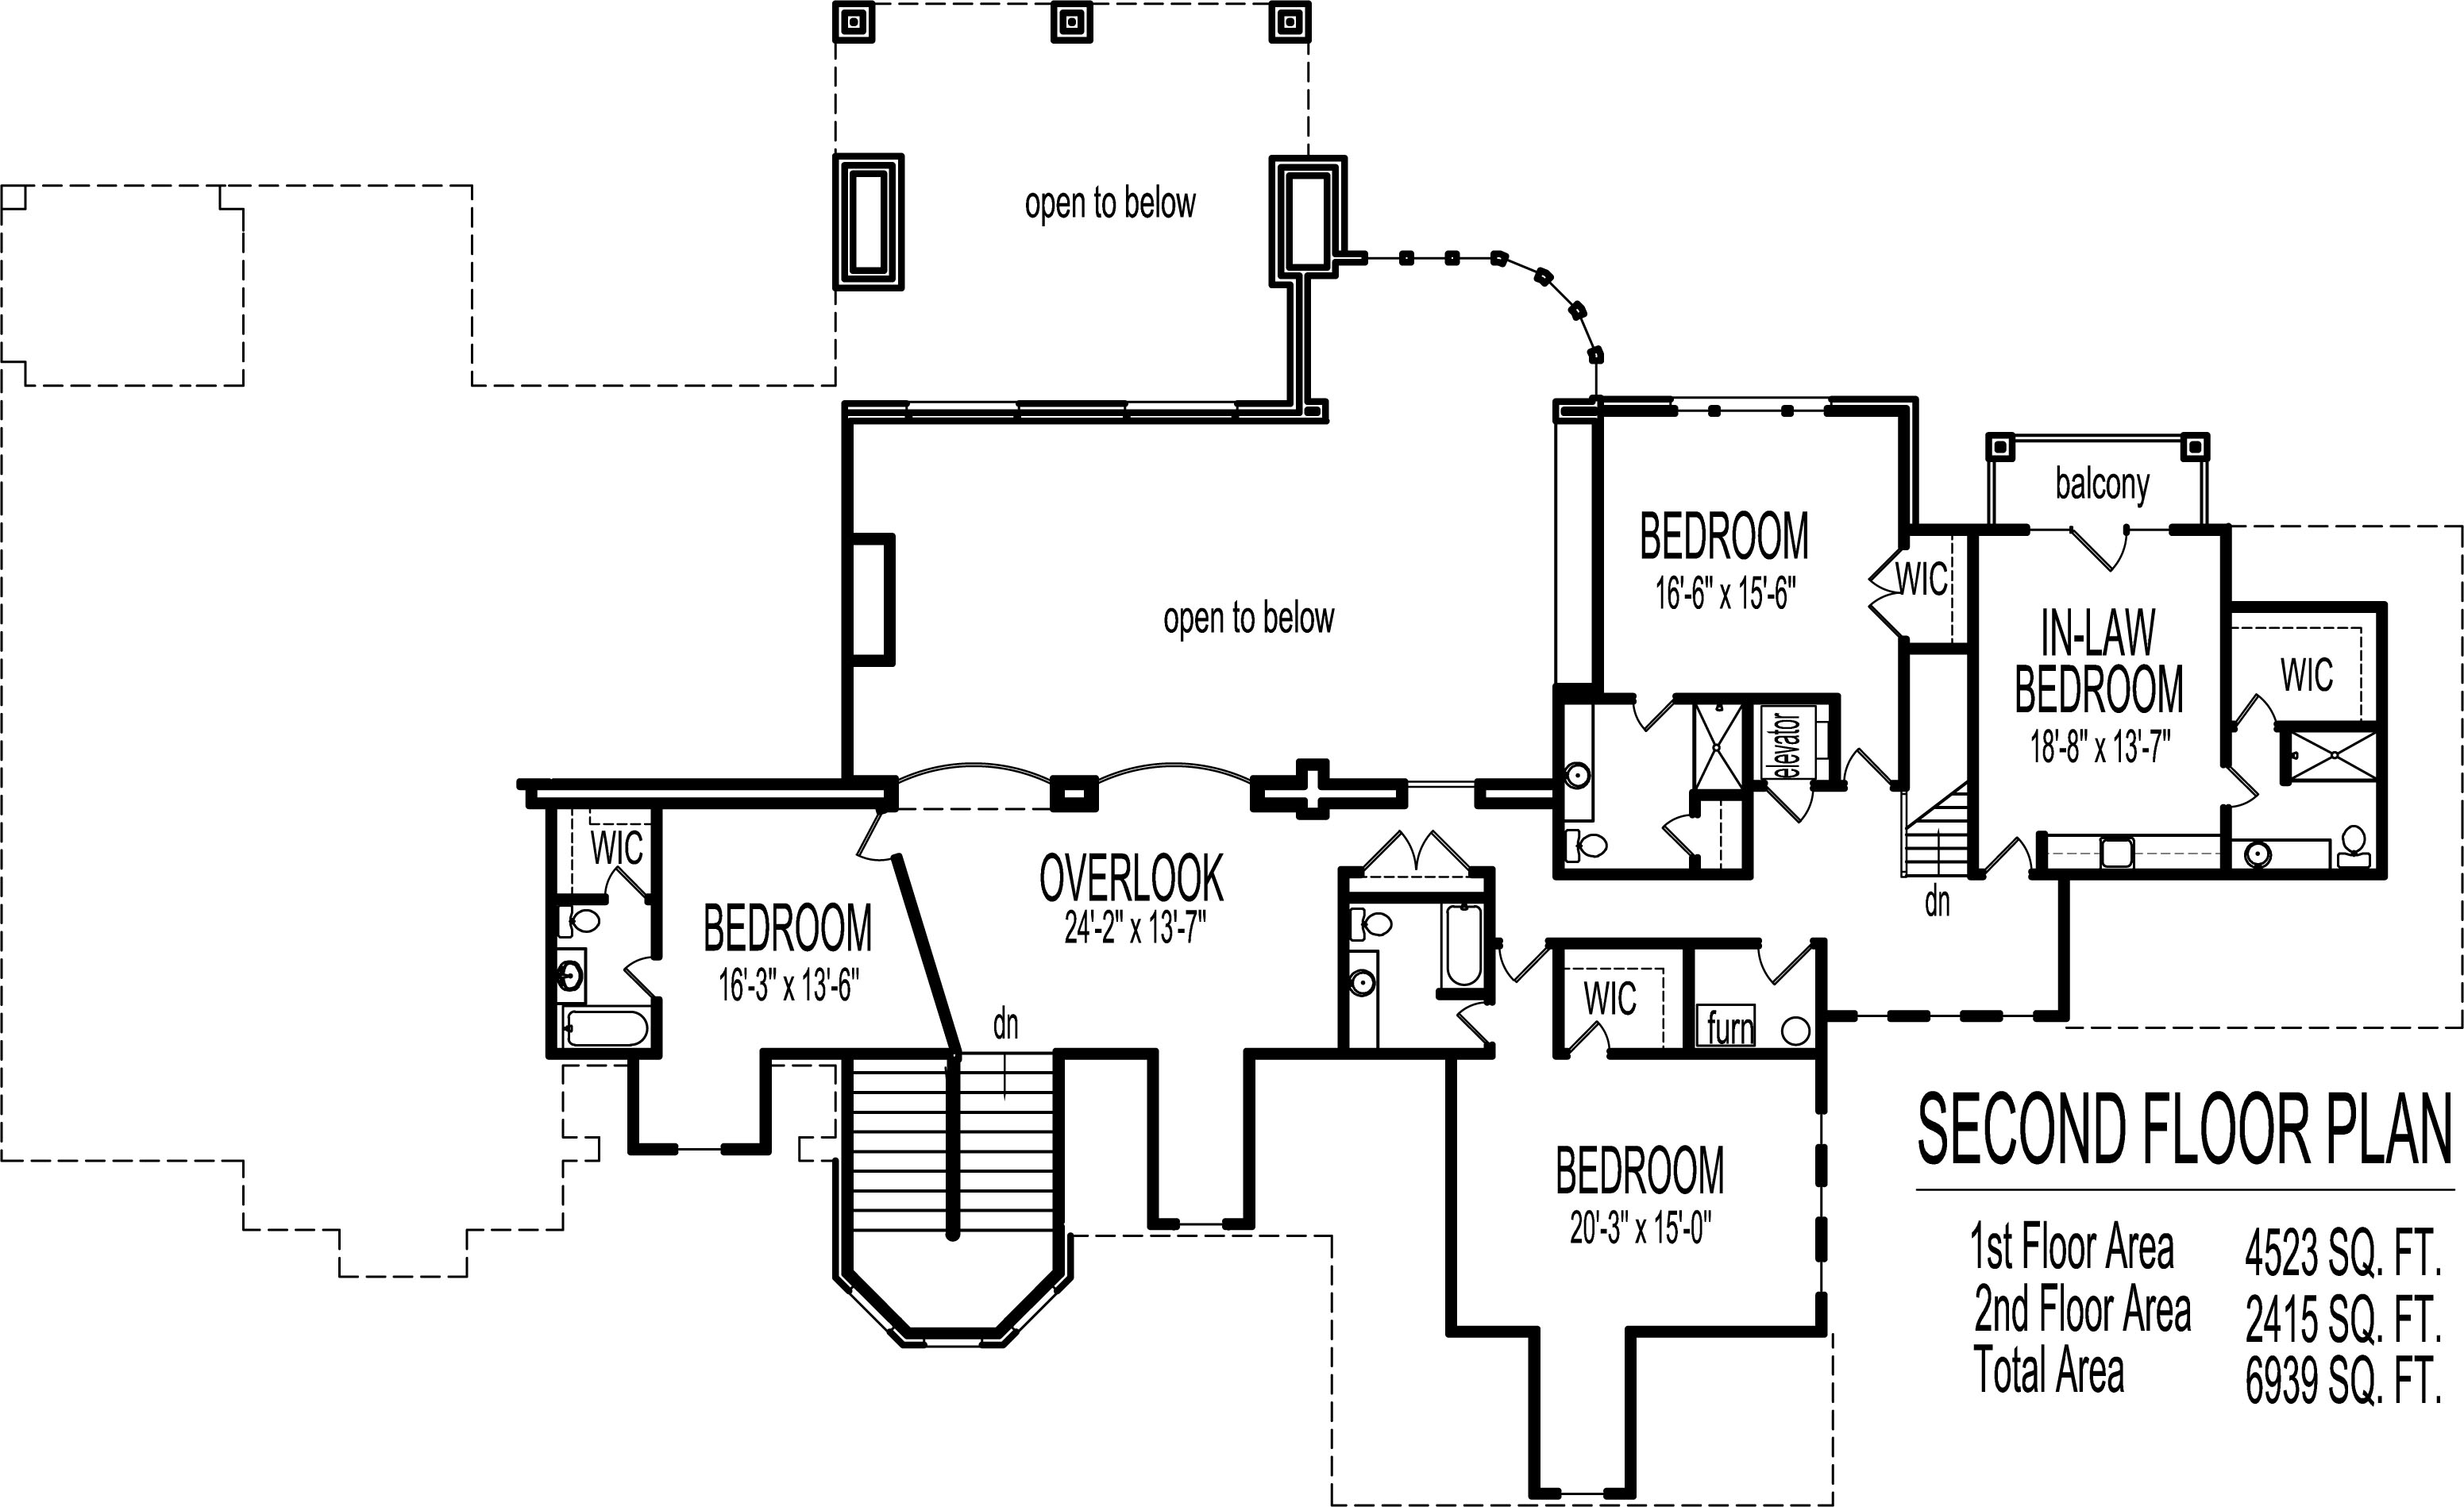 Mansion house floor plans blueprints 6 bedroom 2 story for 6 bedroom floor plans two story